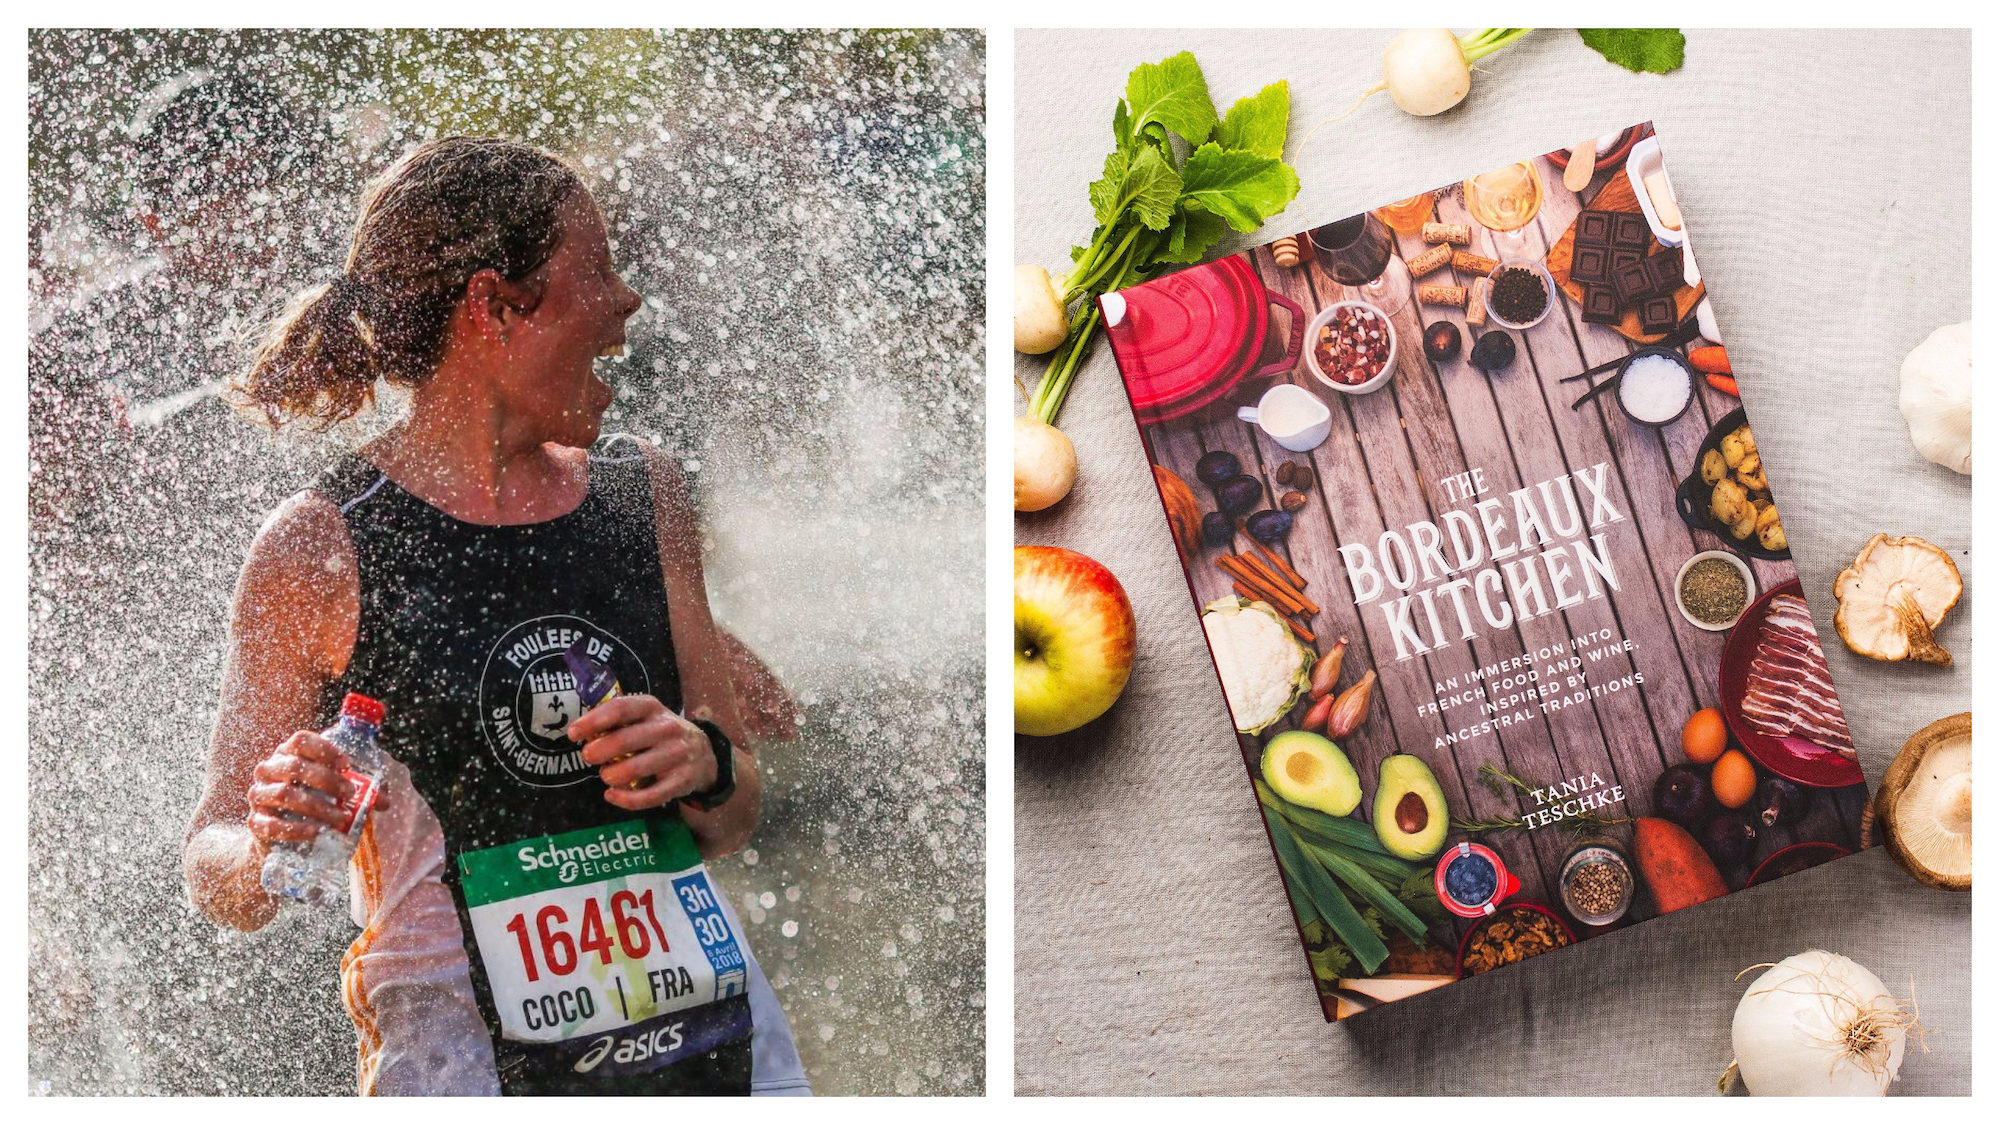 A runner splashed in water at the end of the Paris Marathon in April (left). The Bordeaux Kitchen cookbook by Tania Teschke, out this April (right).